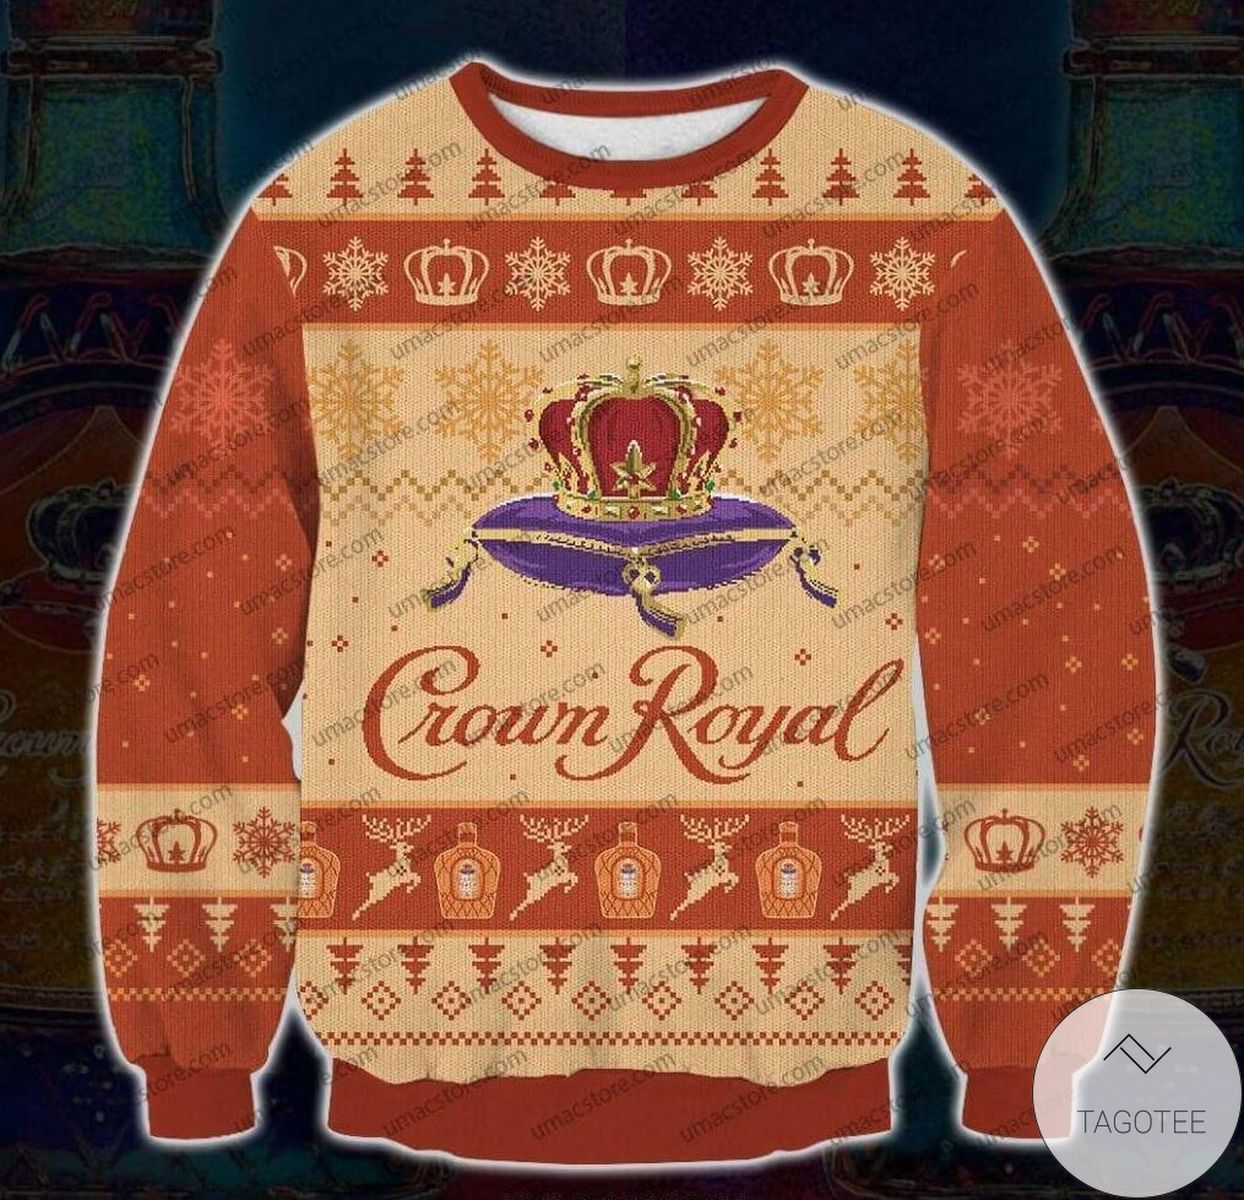 Crown Royal Peach Ugly Christmas Sweater